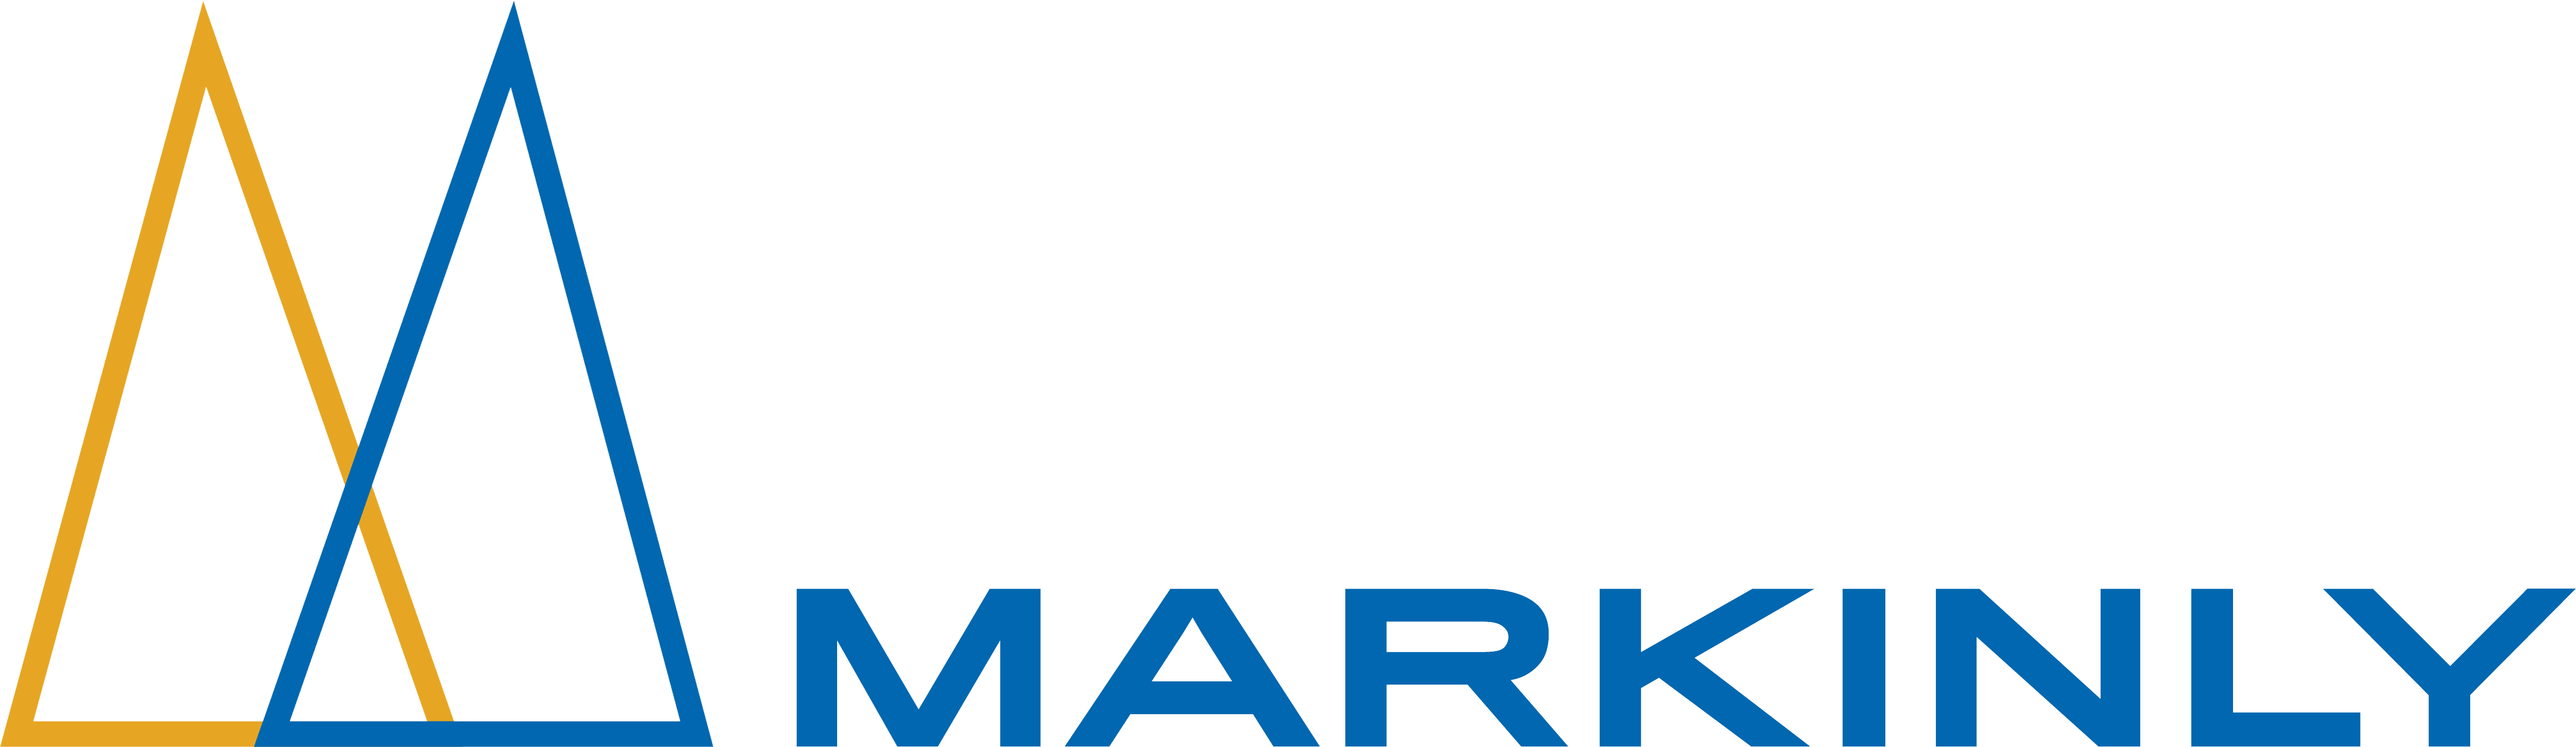 markinly logo